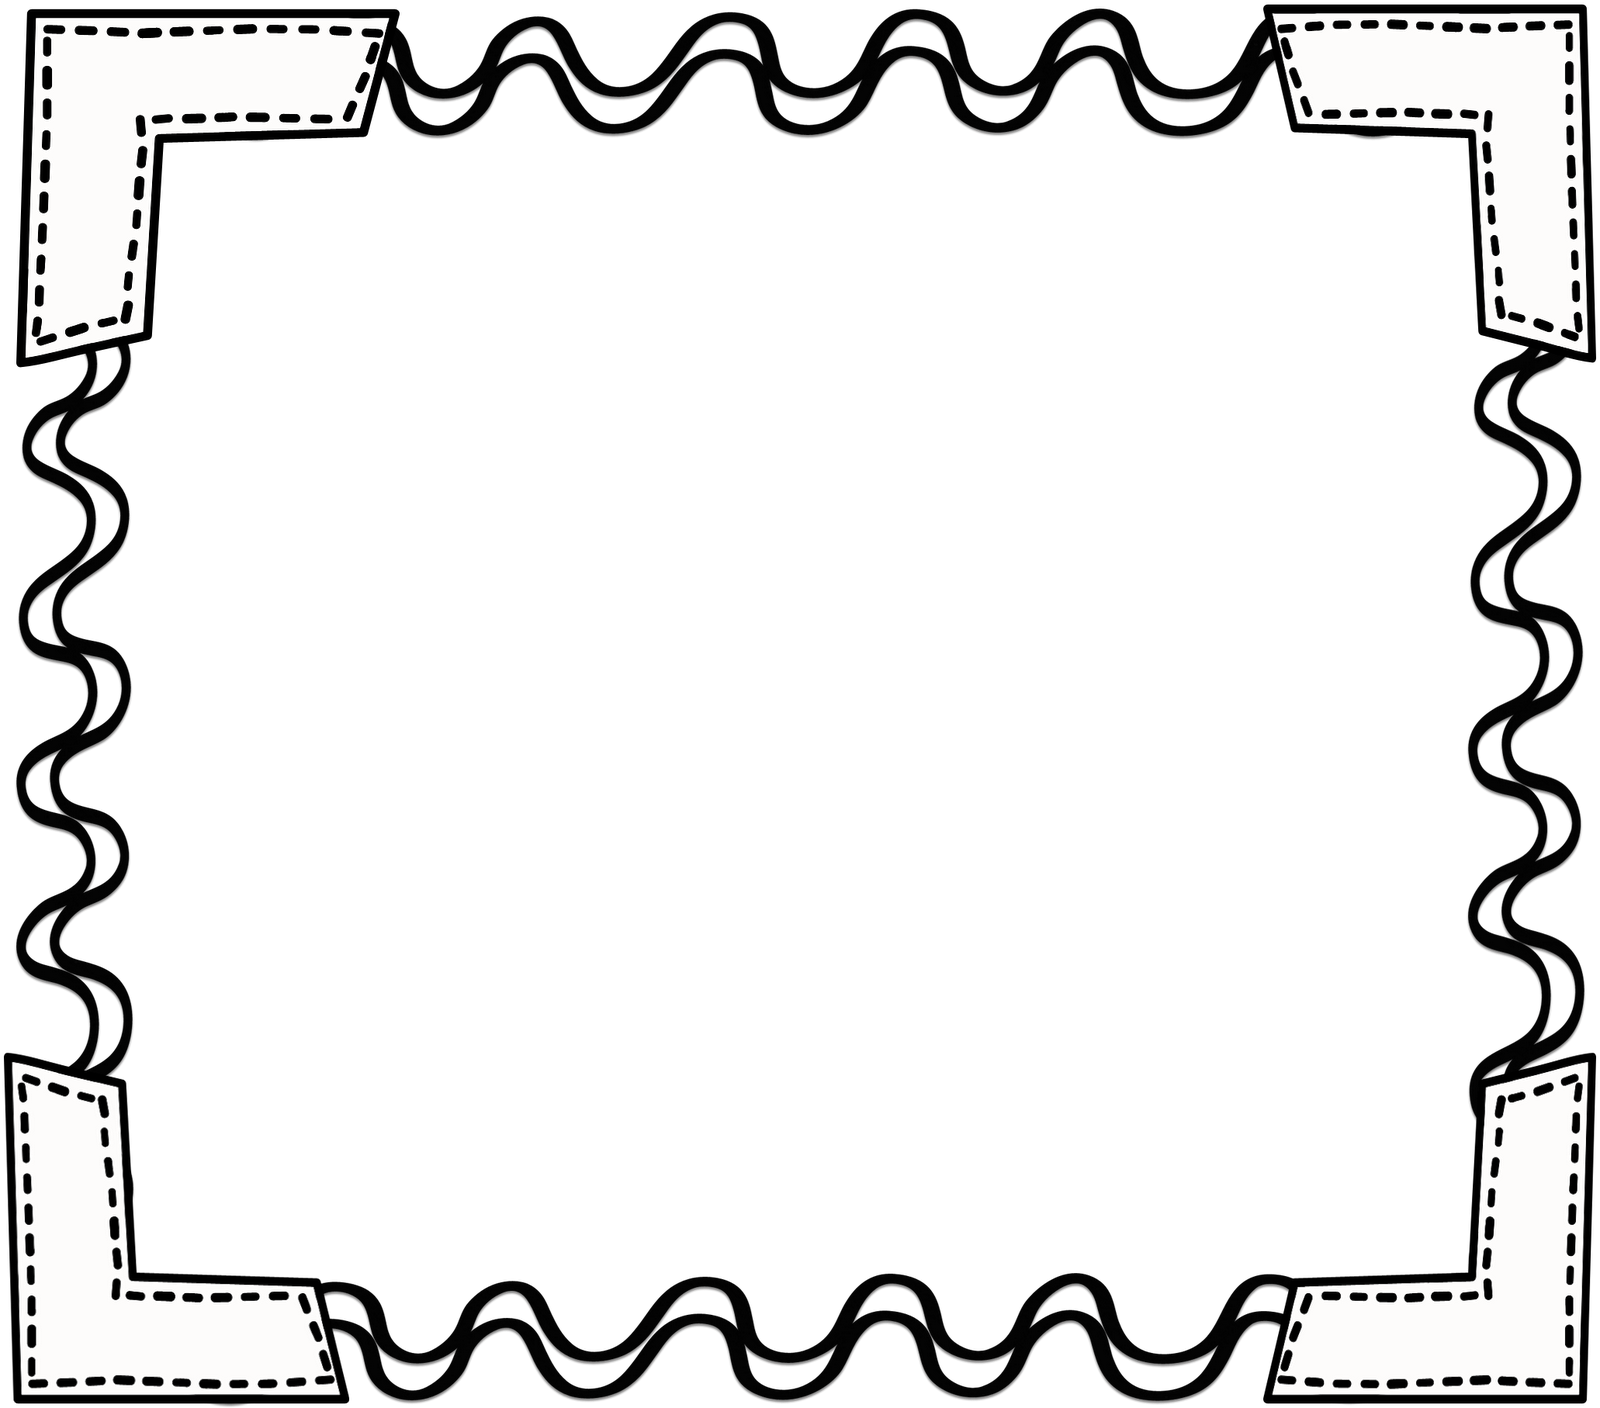 School clipart free borders graphic black and white stock black_white_scribbleframe.png 1,600×1,408 pixels | School ... graphic black and white stock